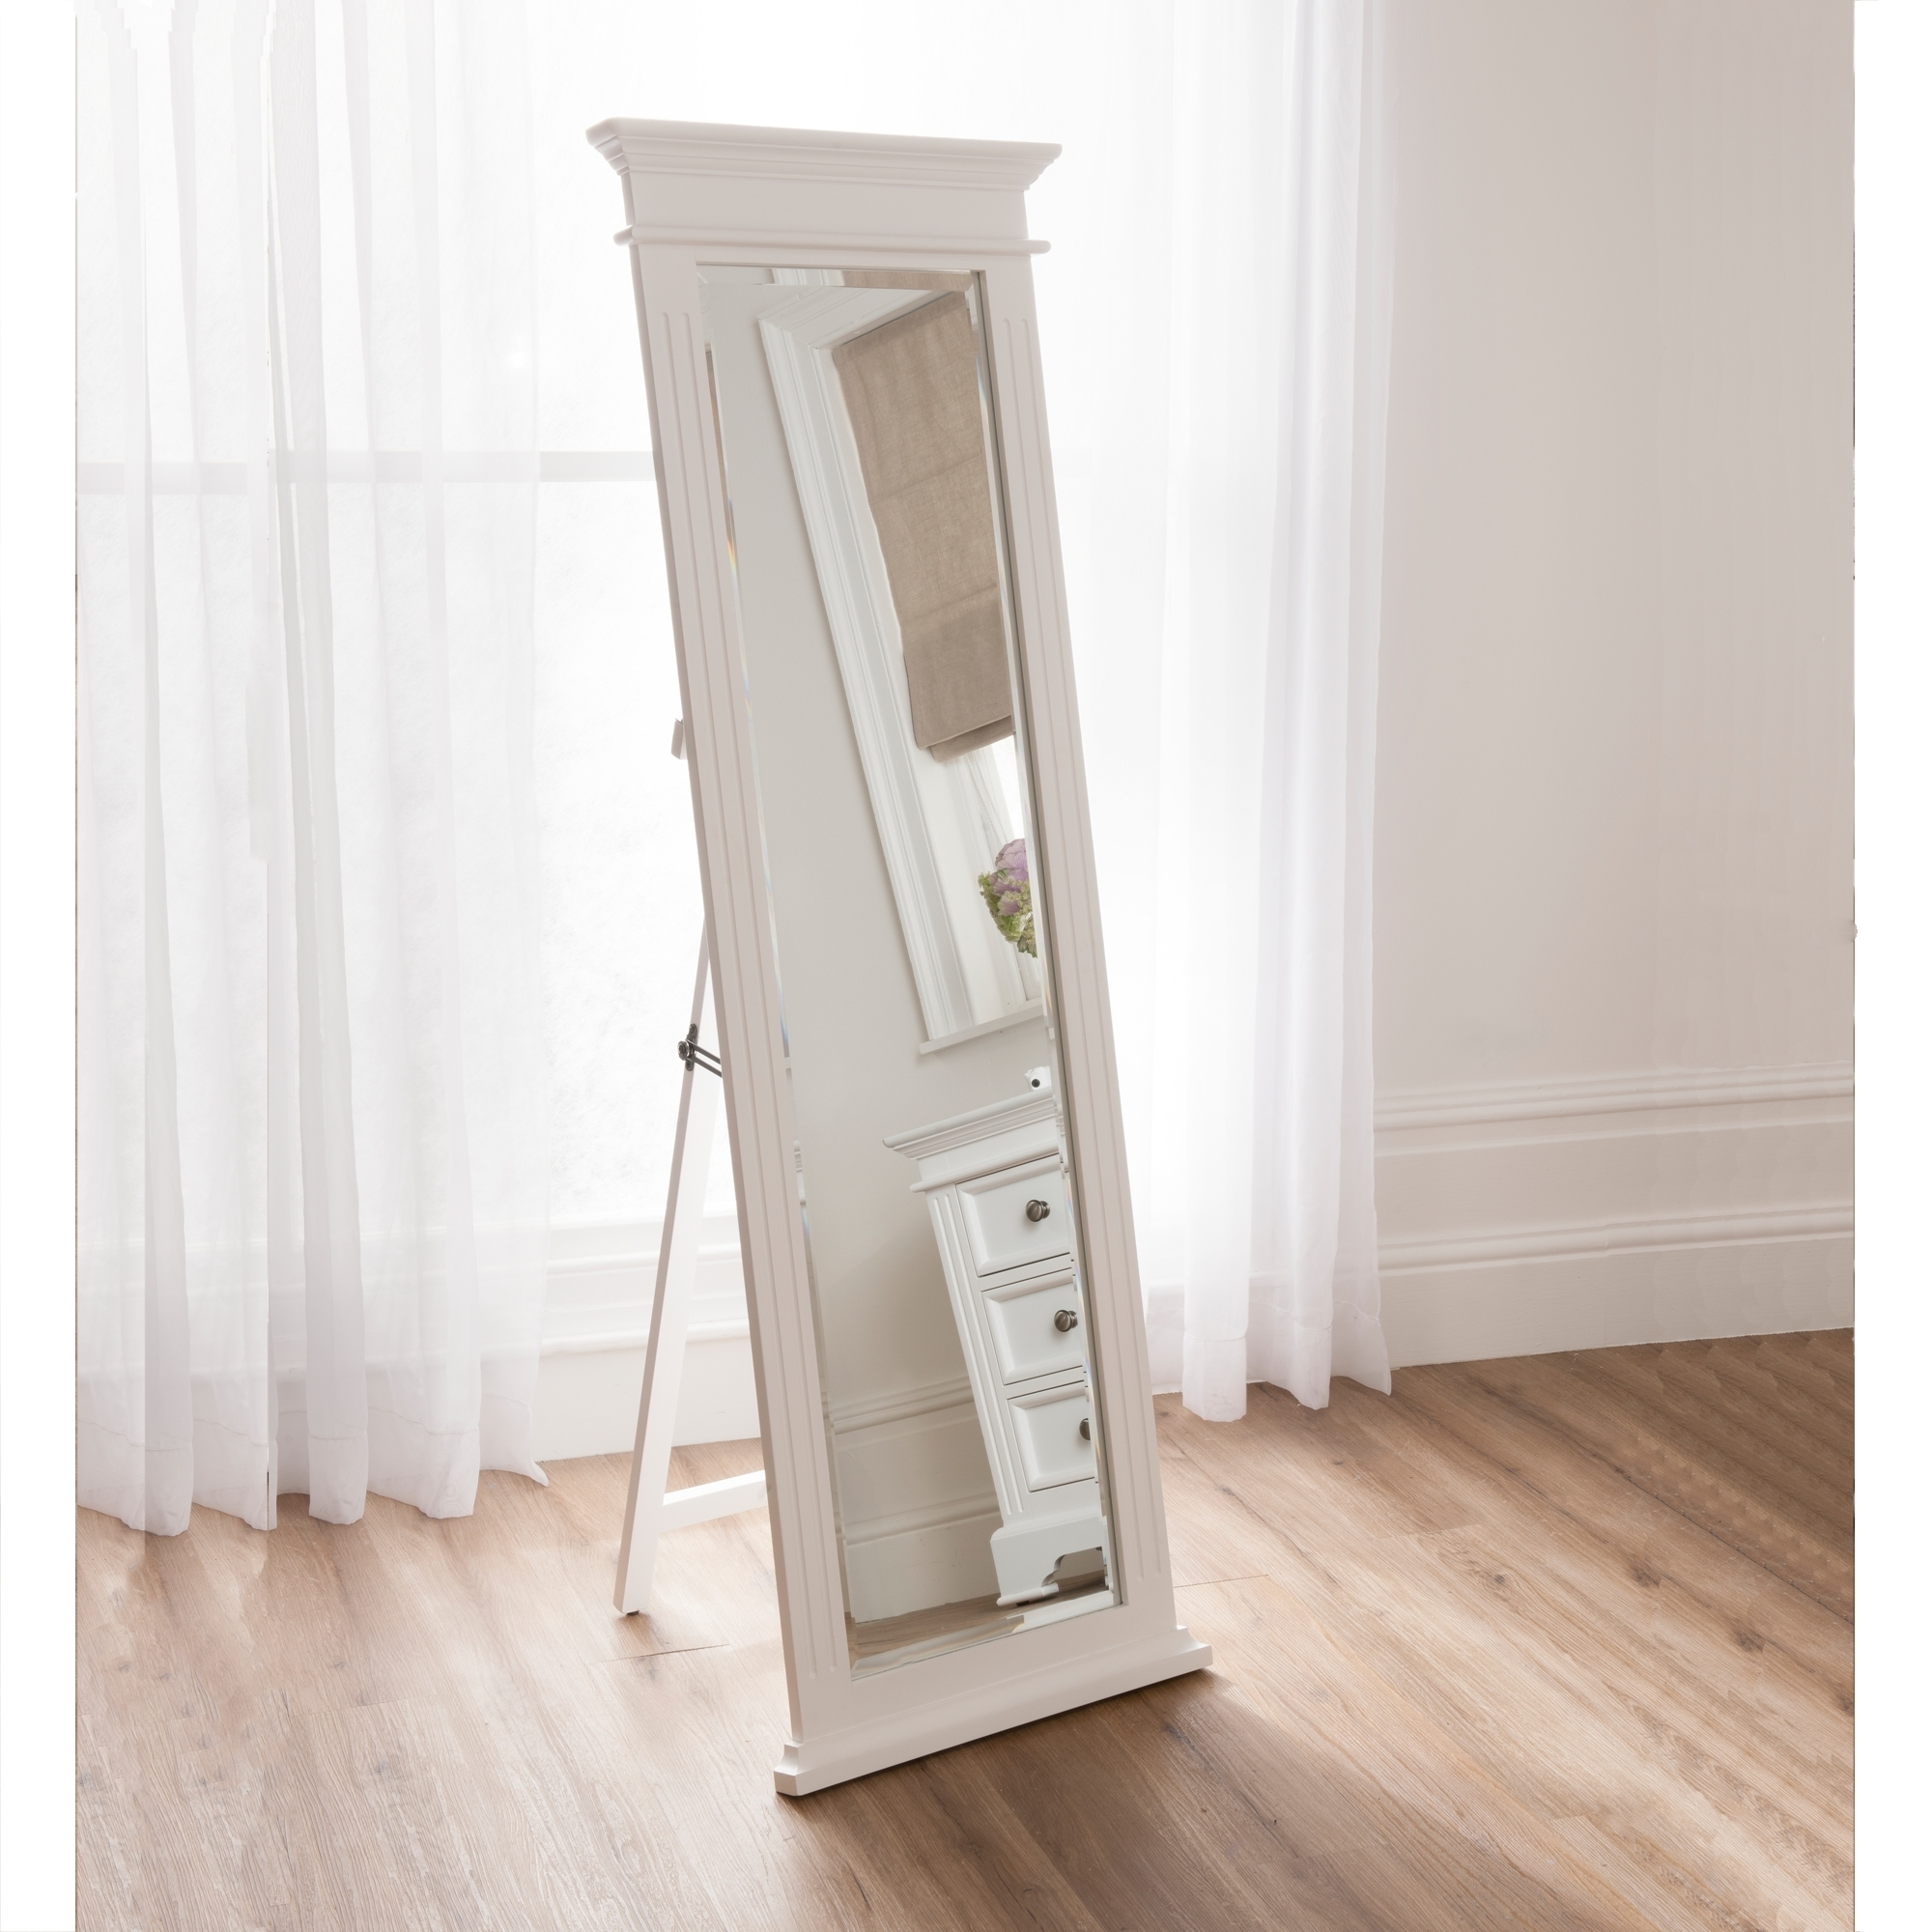 Cheval Mirrors French Style Mirrors Shab Chic With Free Standing Shabby Chic Mirror (Image 8 of 15)